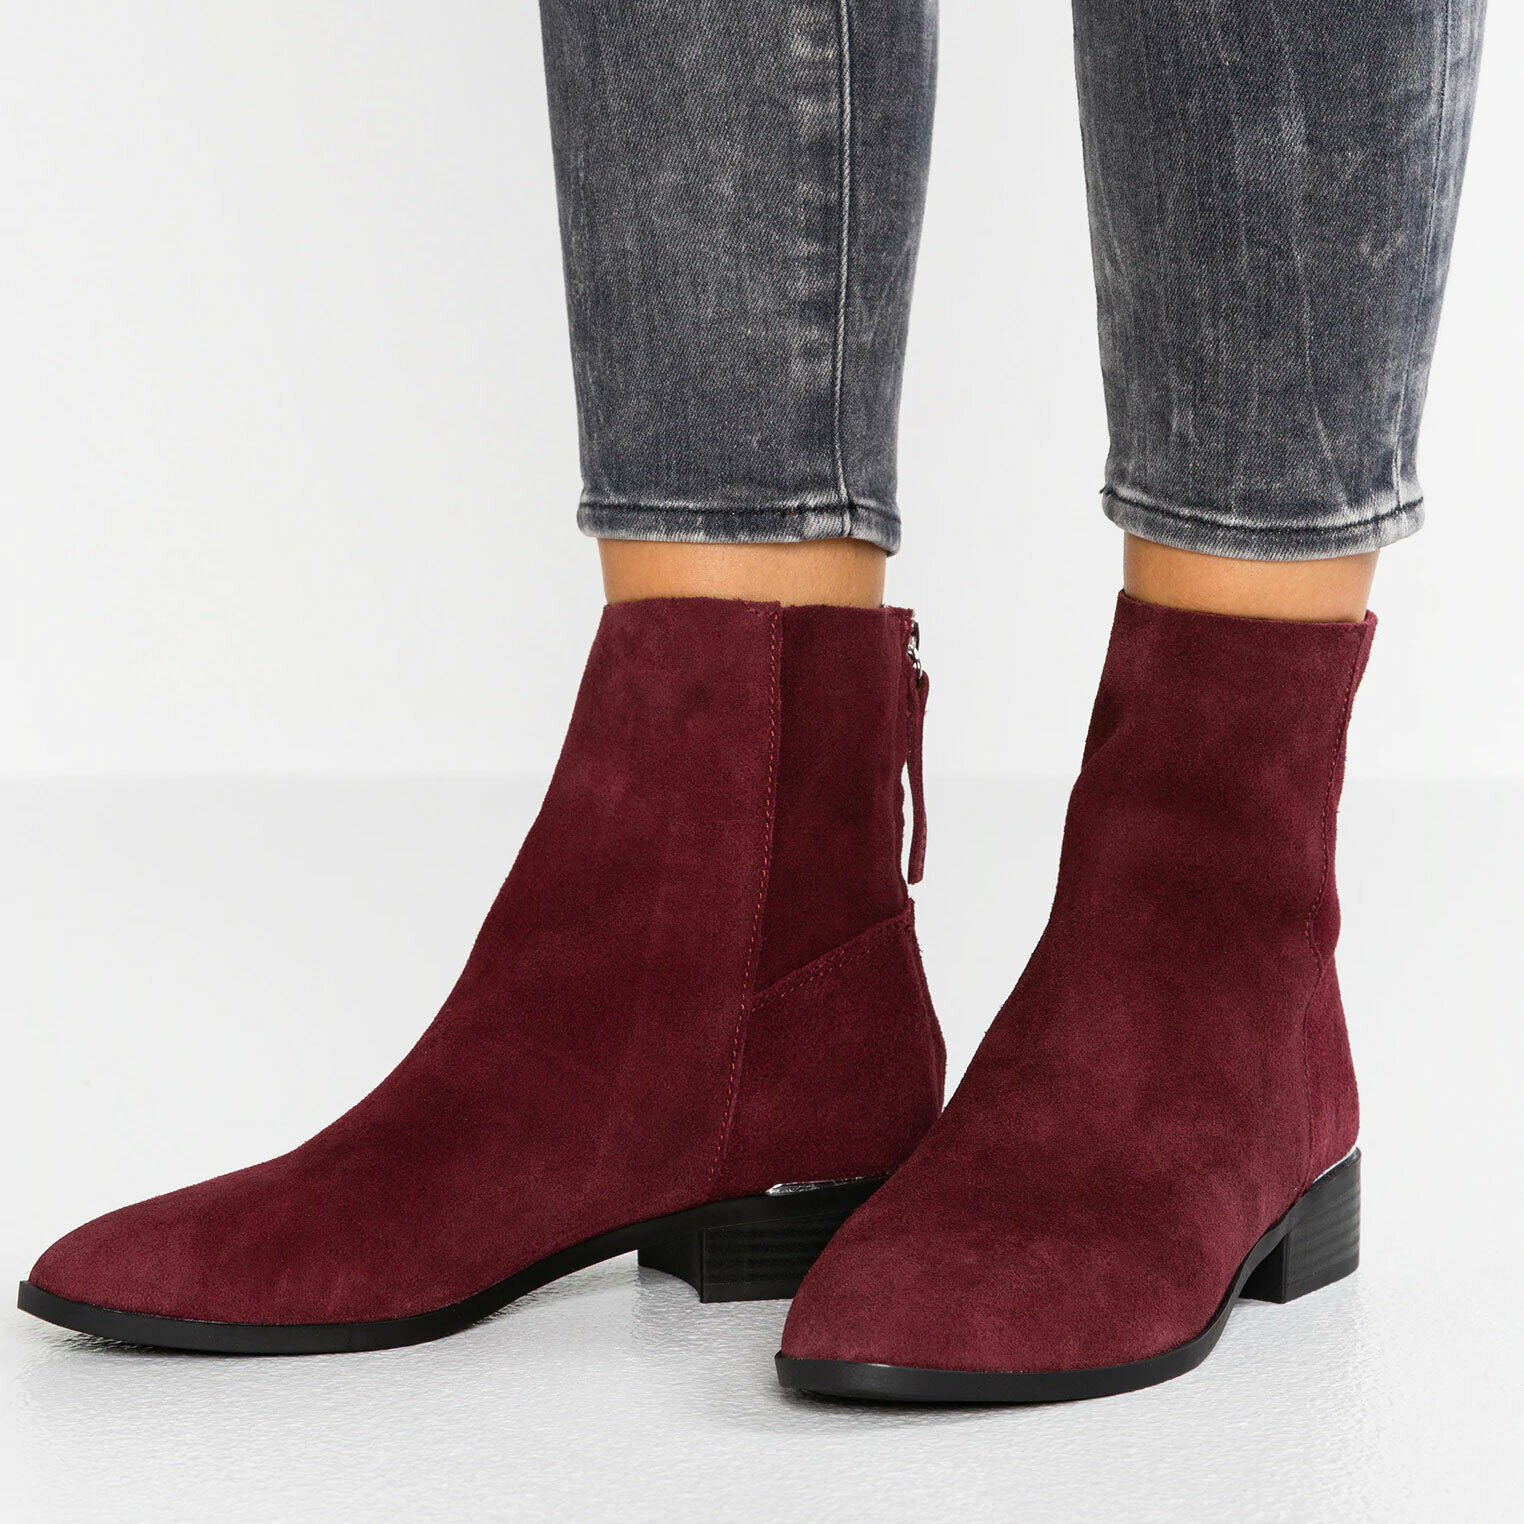 Topshop Leather Boots Burgundy